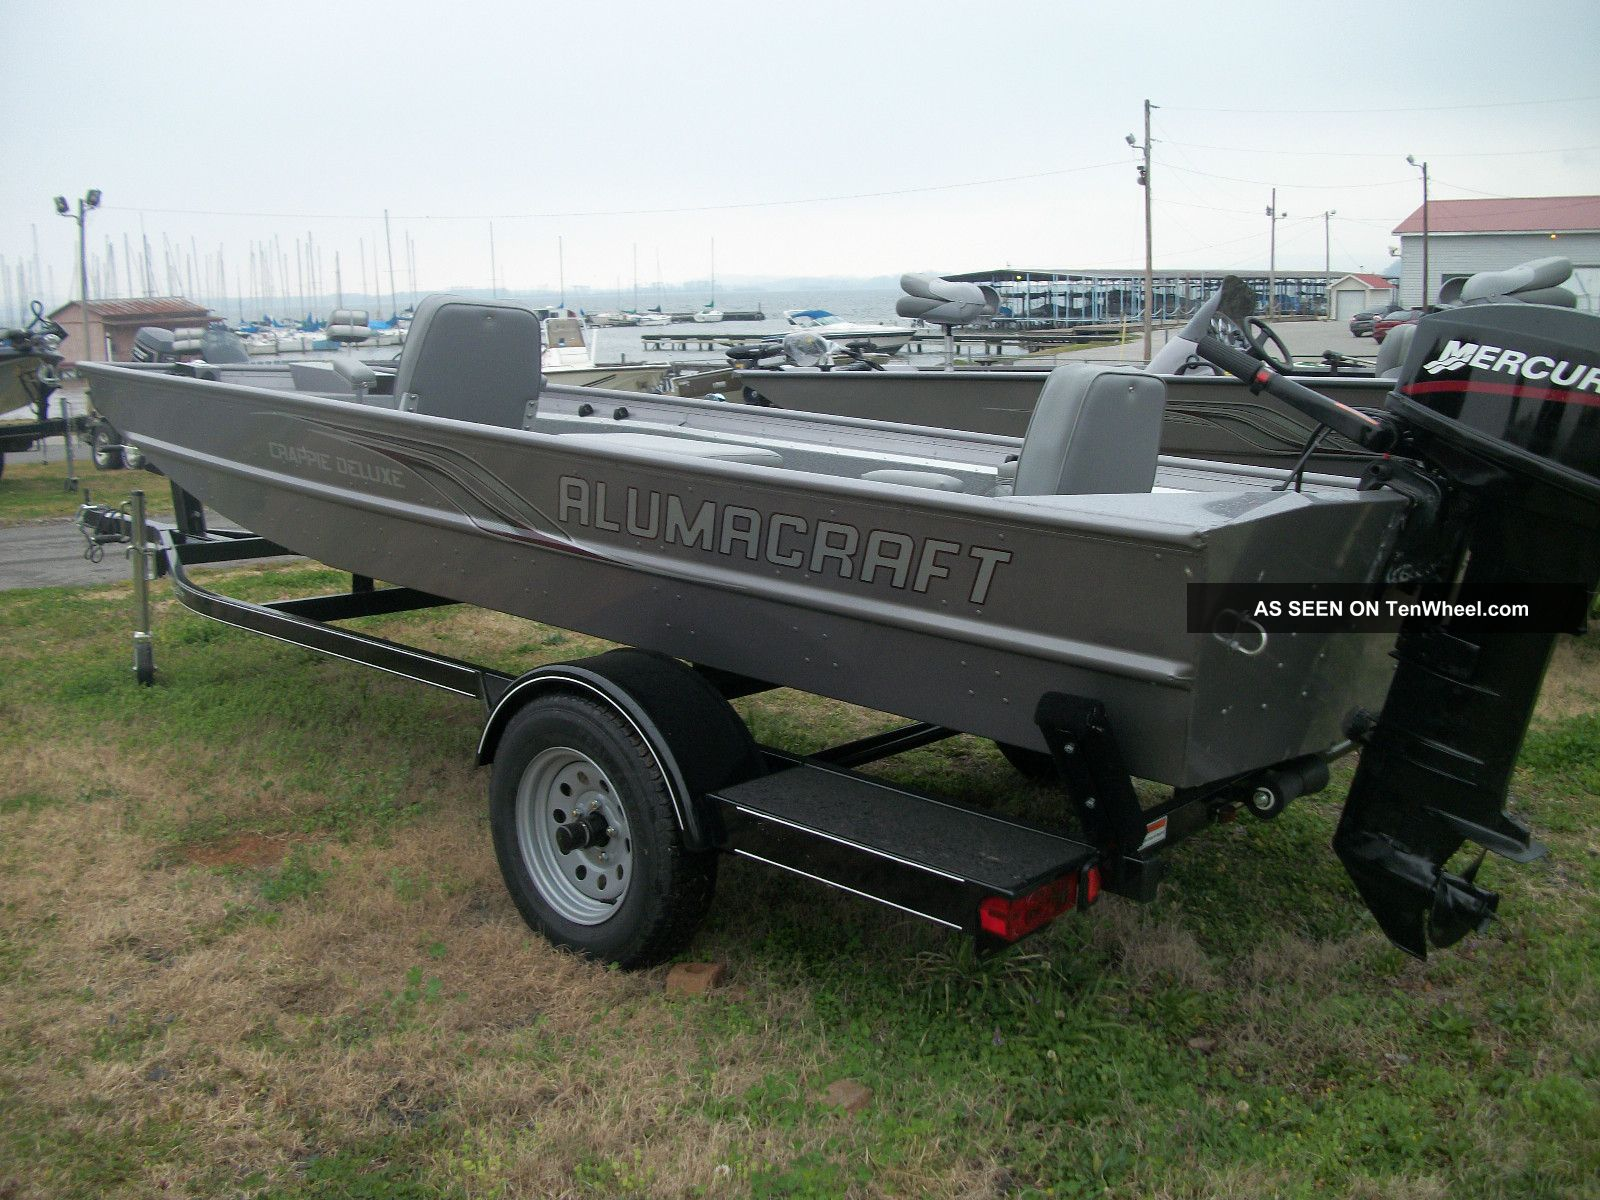 2012 Alumacraft Bass Boat Wiring Search For Diagrams Diagram Crappie Deluxe Construction Used Boats